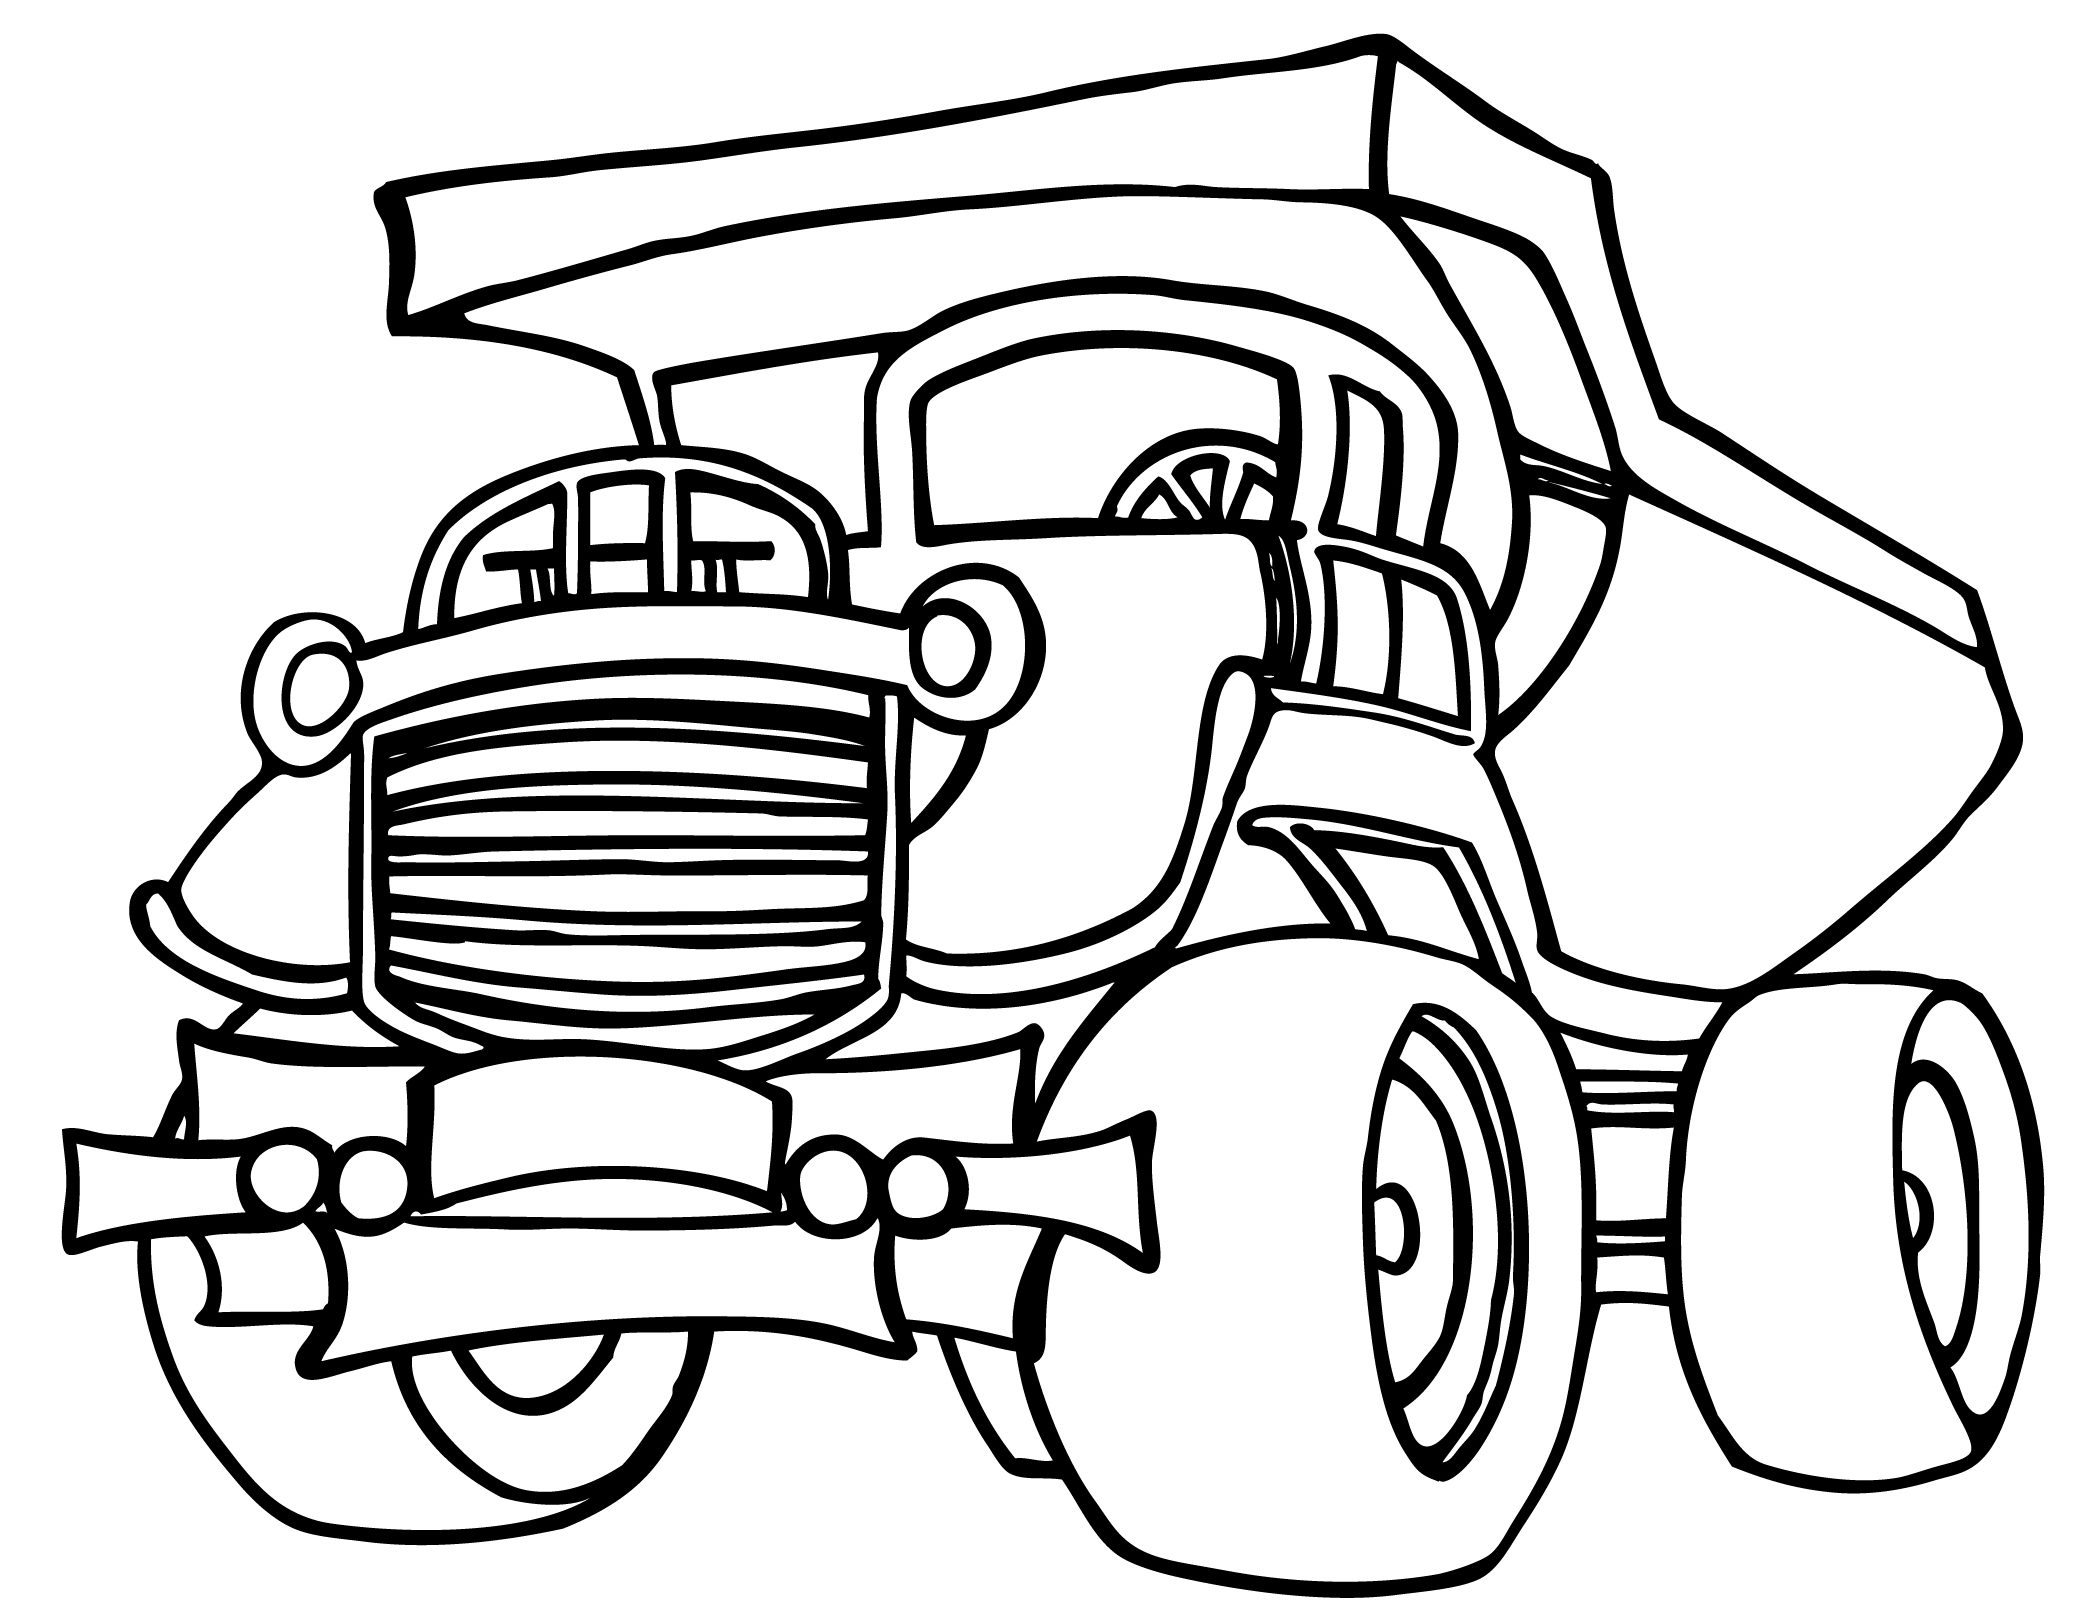 Construction vehicles coloring pages download and print